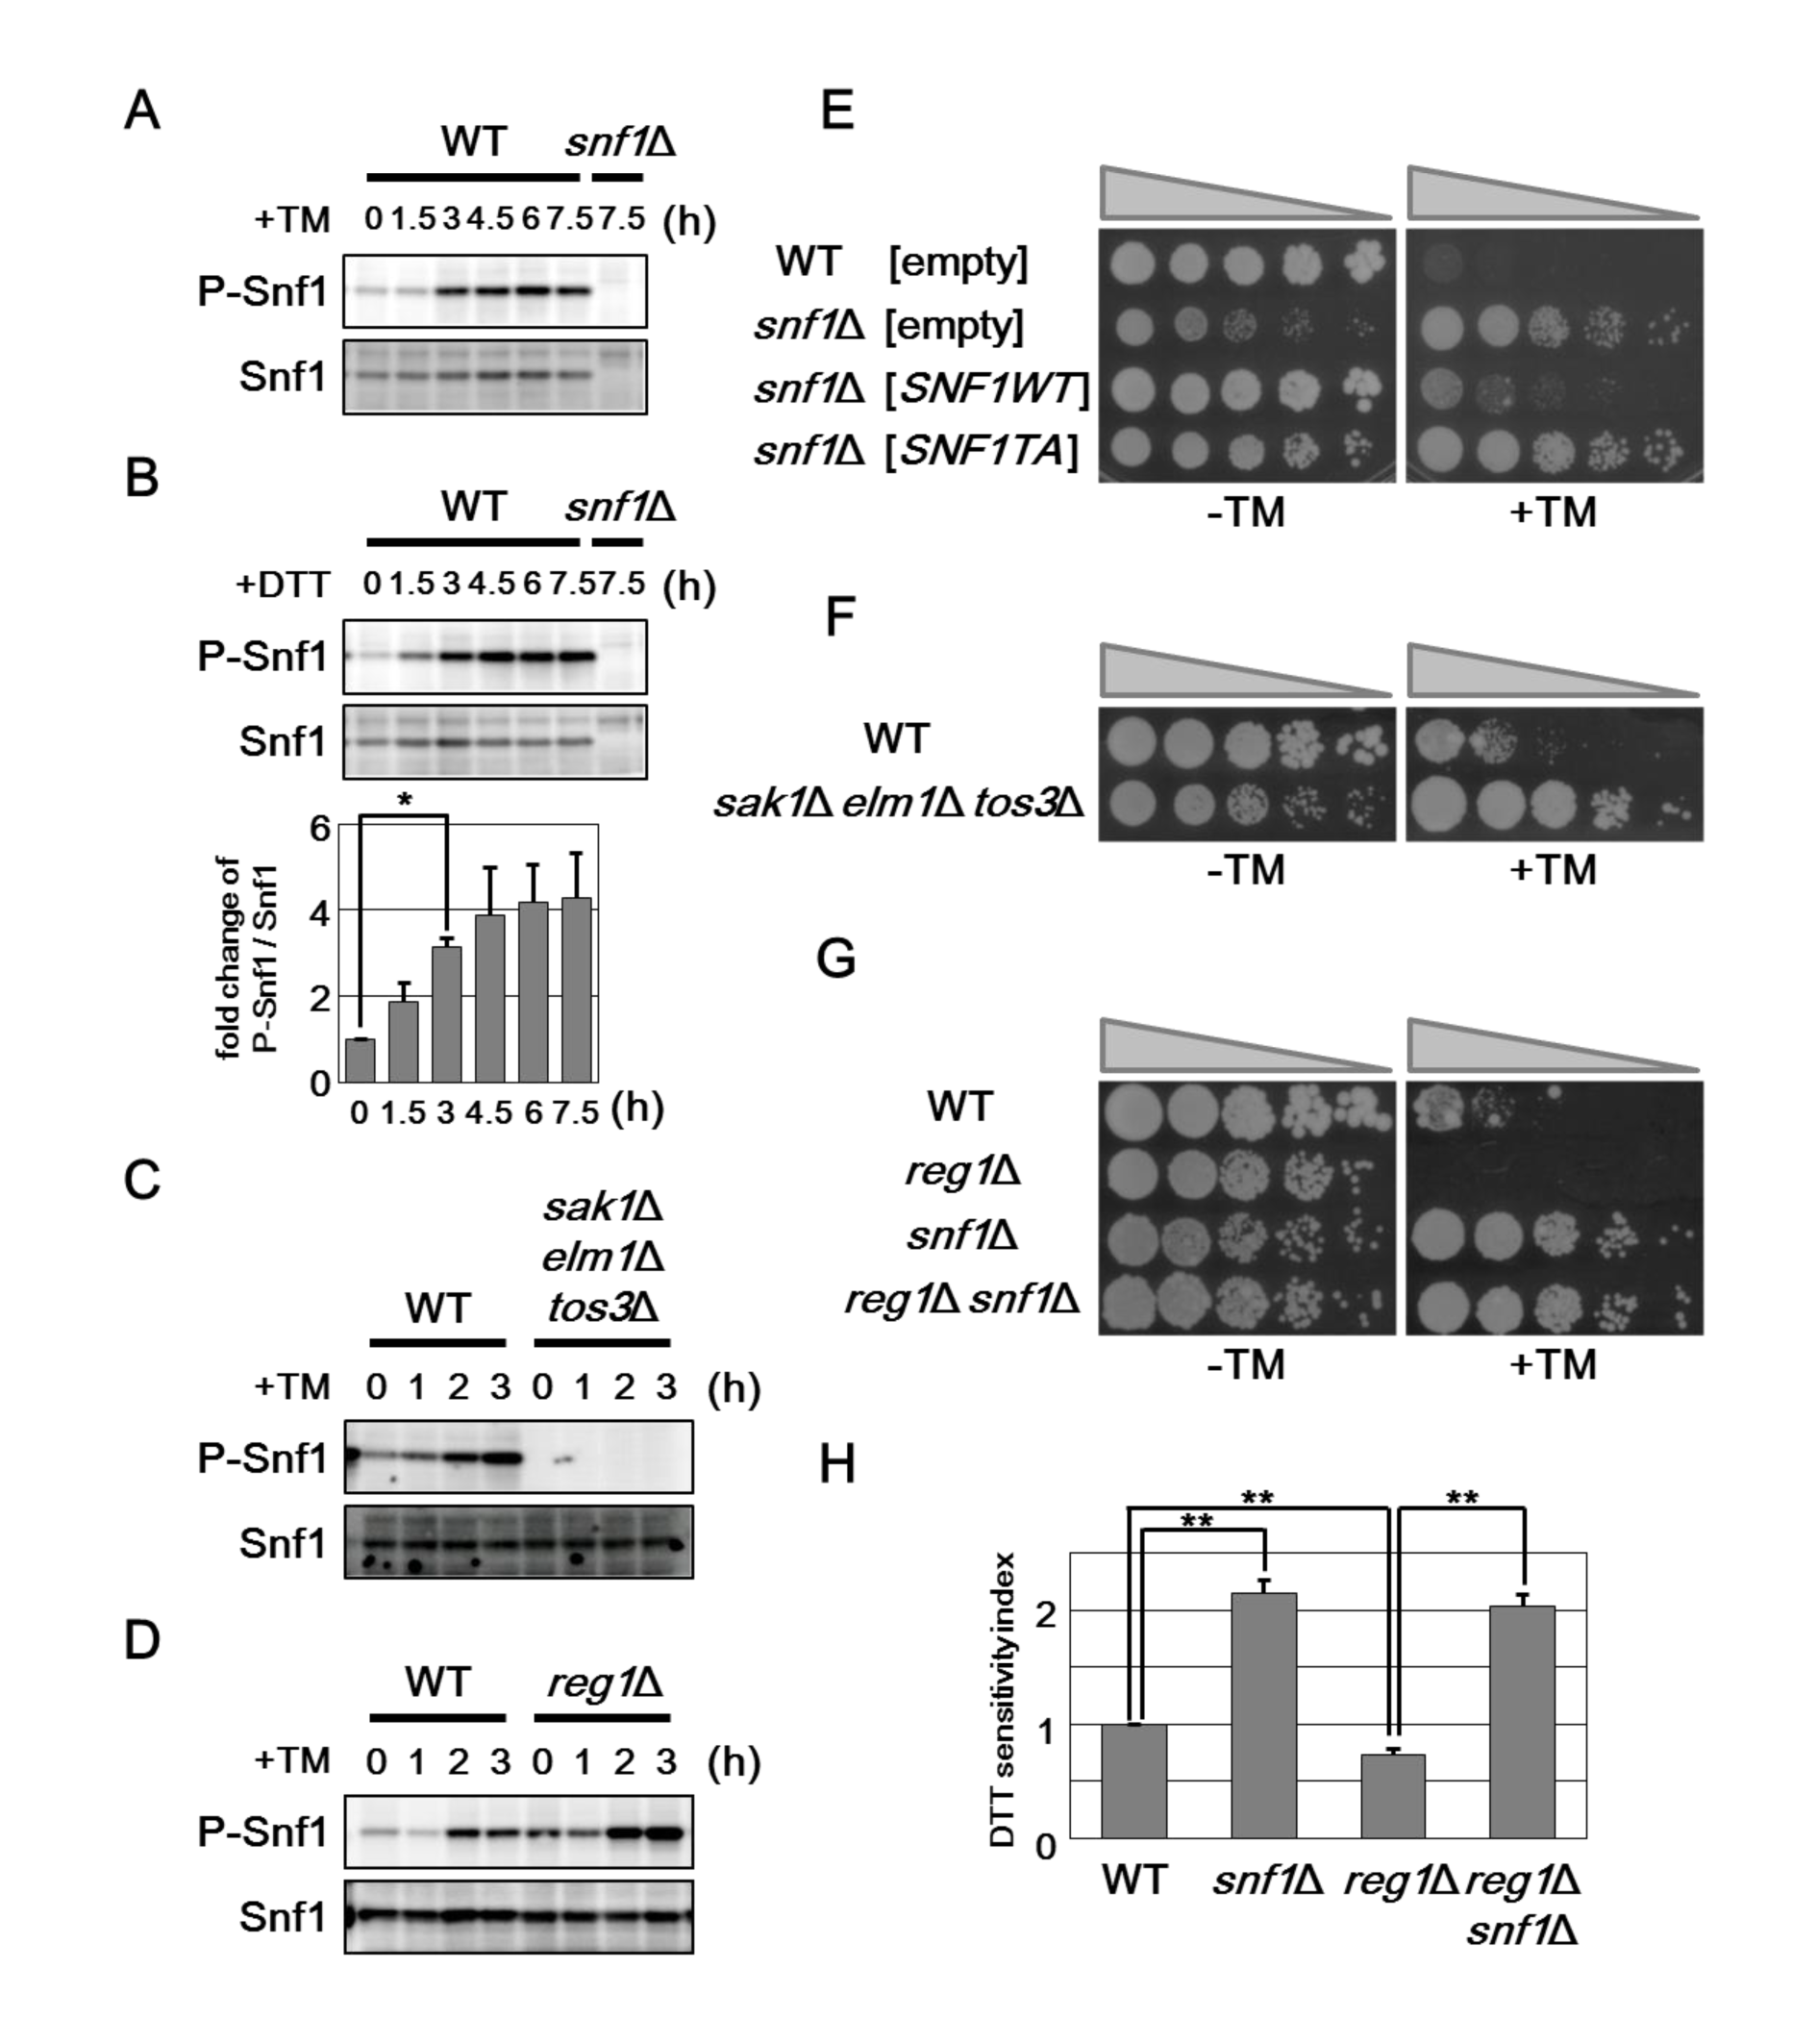 Snf1 phosphorylation is important for its role in ER stress response.